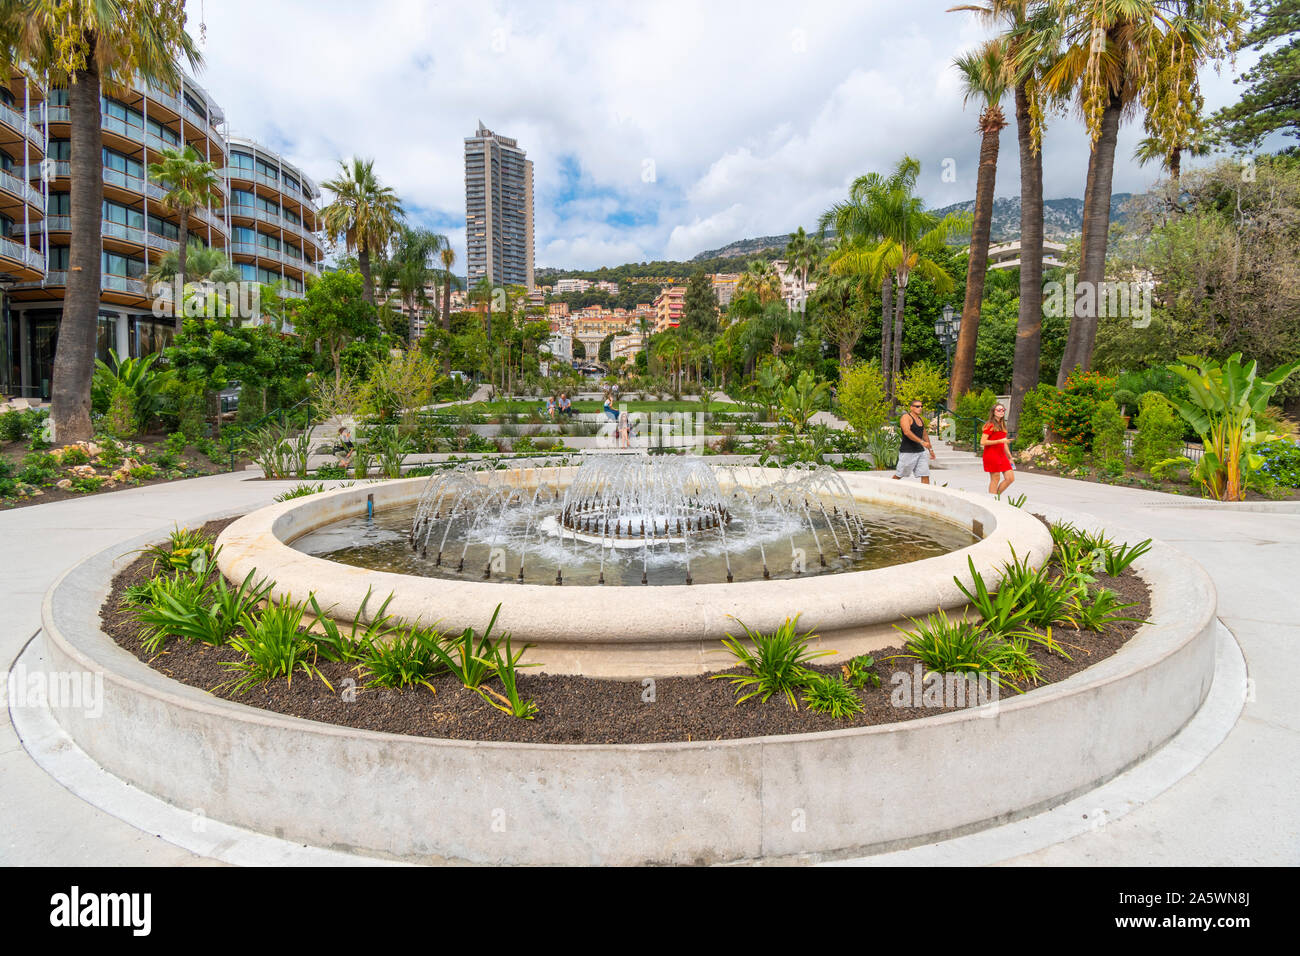 The sloping, landscaped Casino Gardens and water fountain designed by Adouard Andre, with the city behind in Monte Carlo, Monaco. Stock Photo